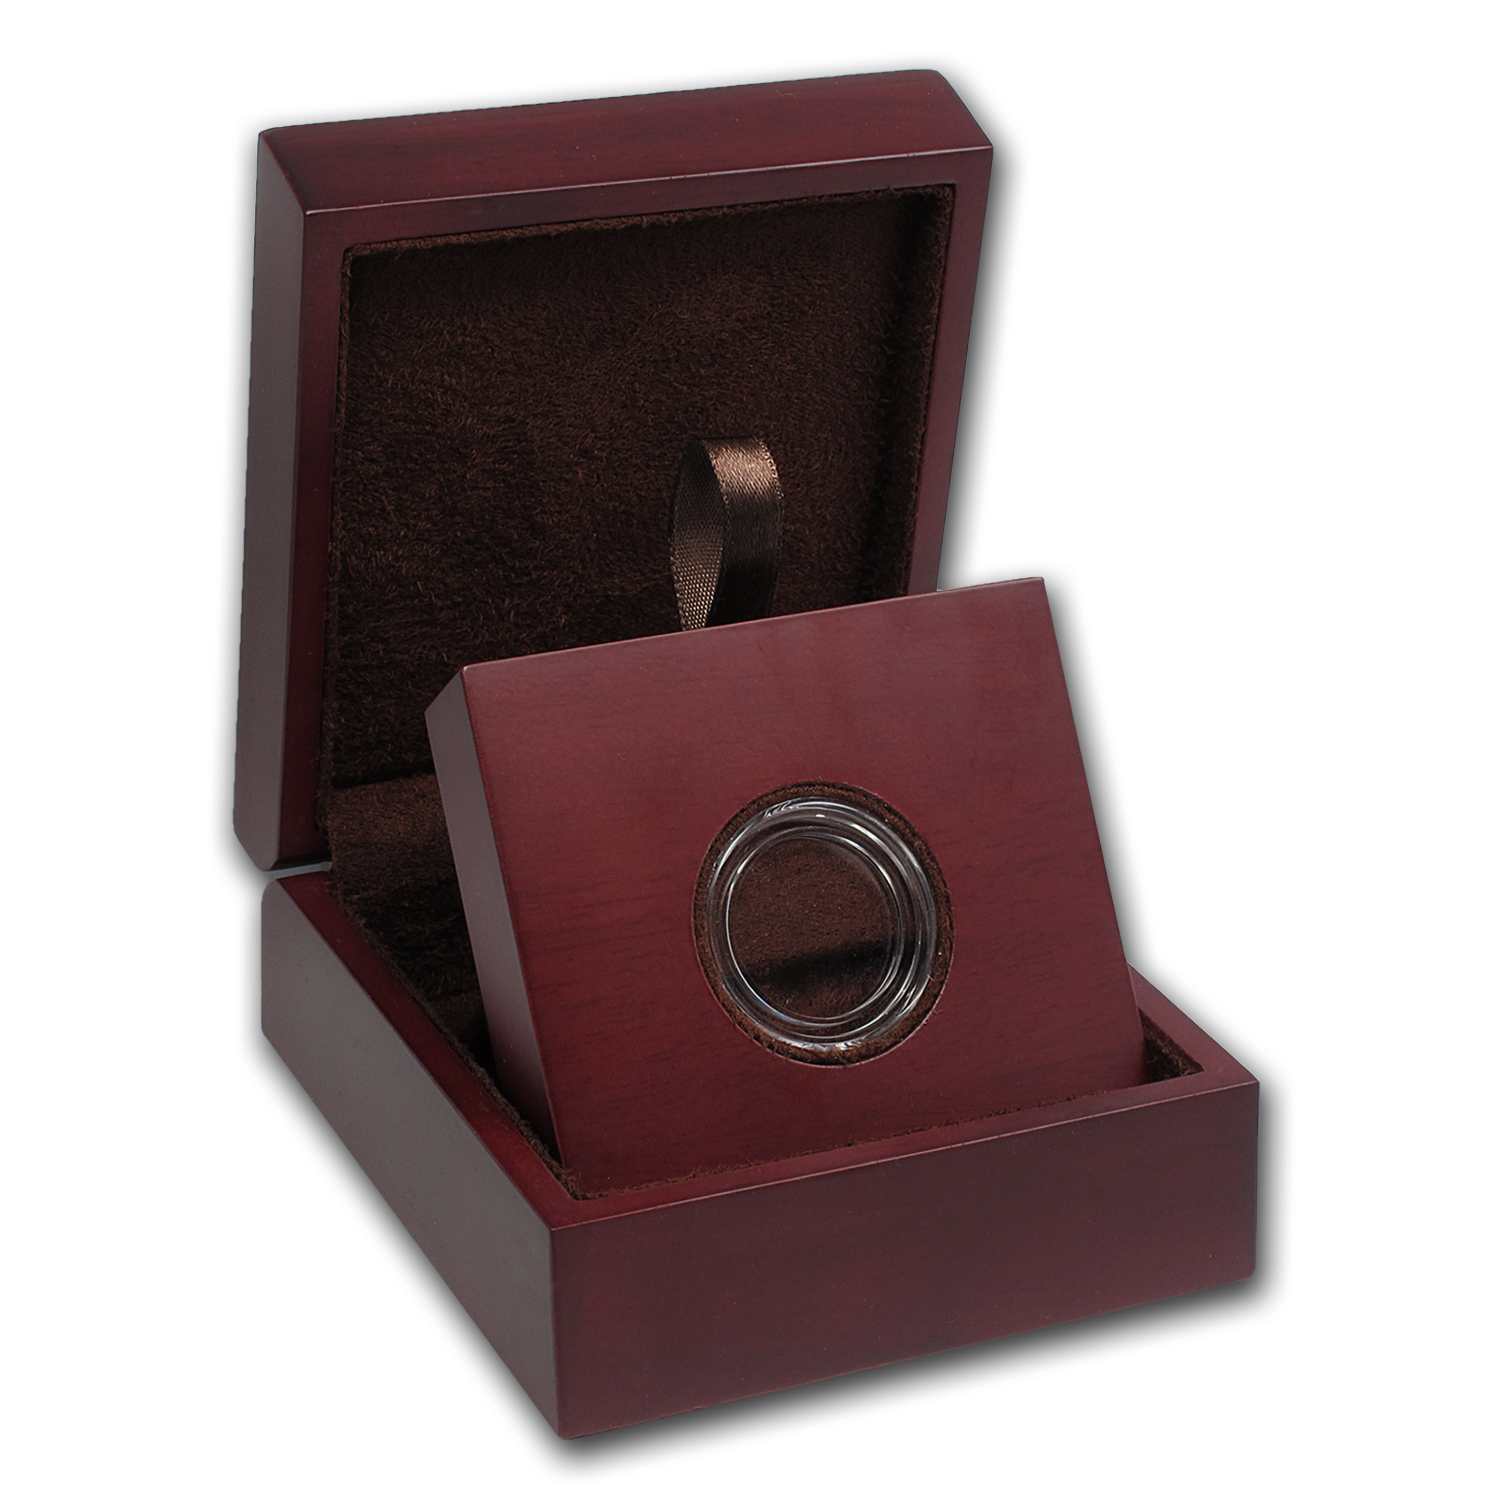 APMEX Wood Gift Box - Includes 22 mm Direct Fit Air-Tite Holder